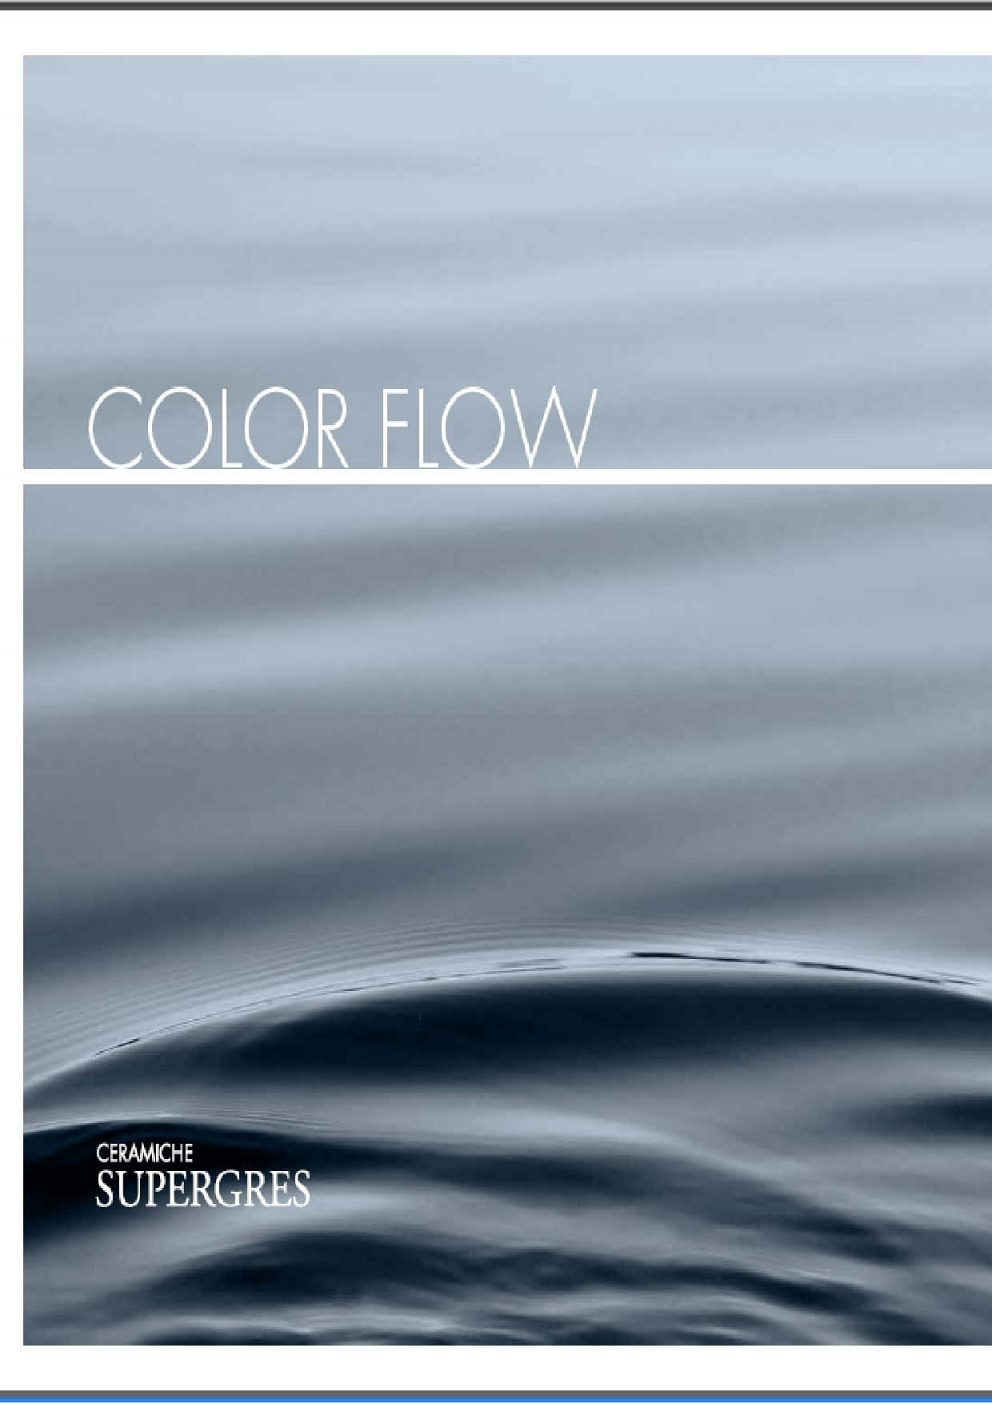 Supergres - Color flow